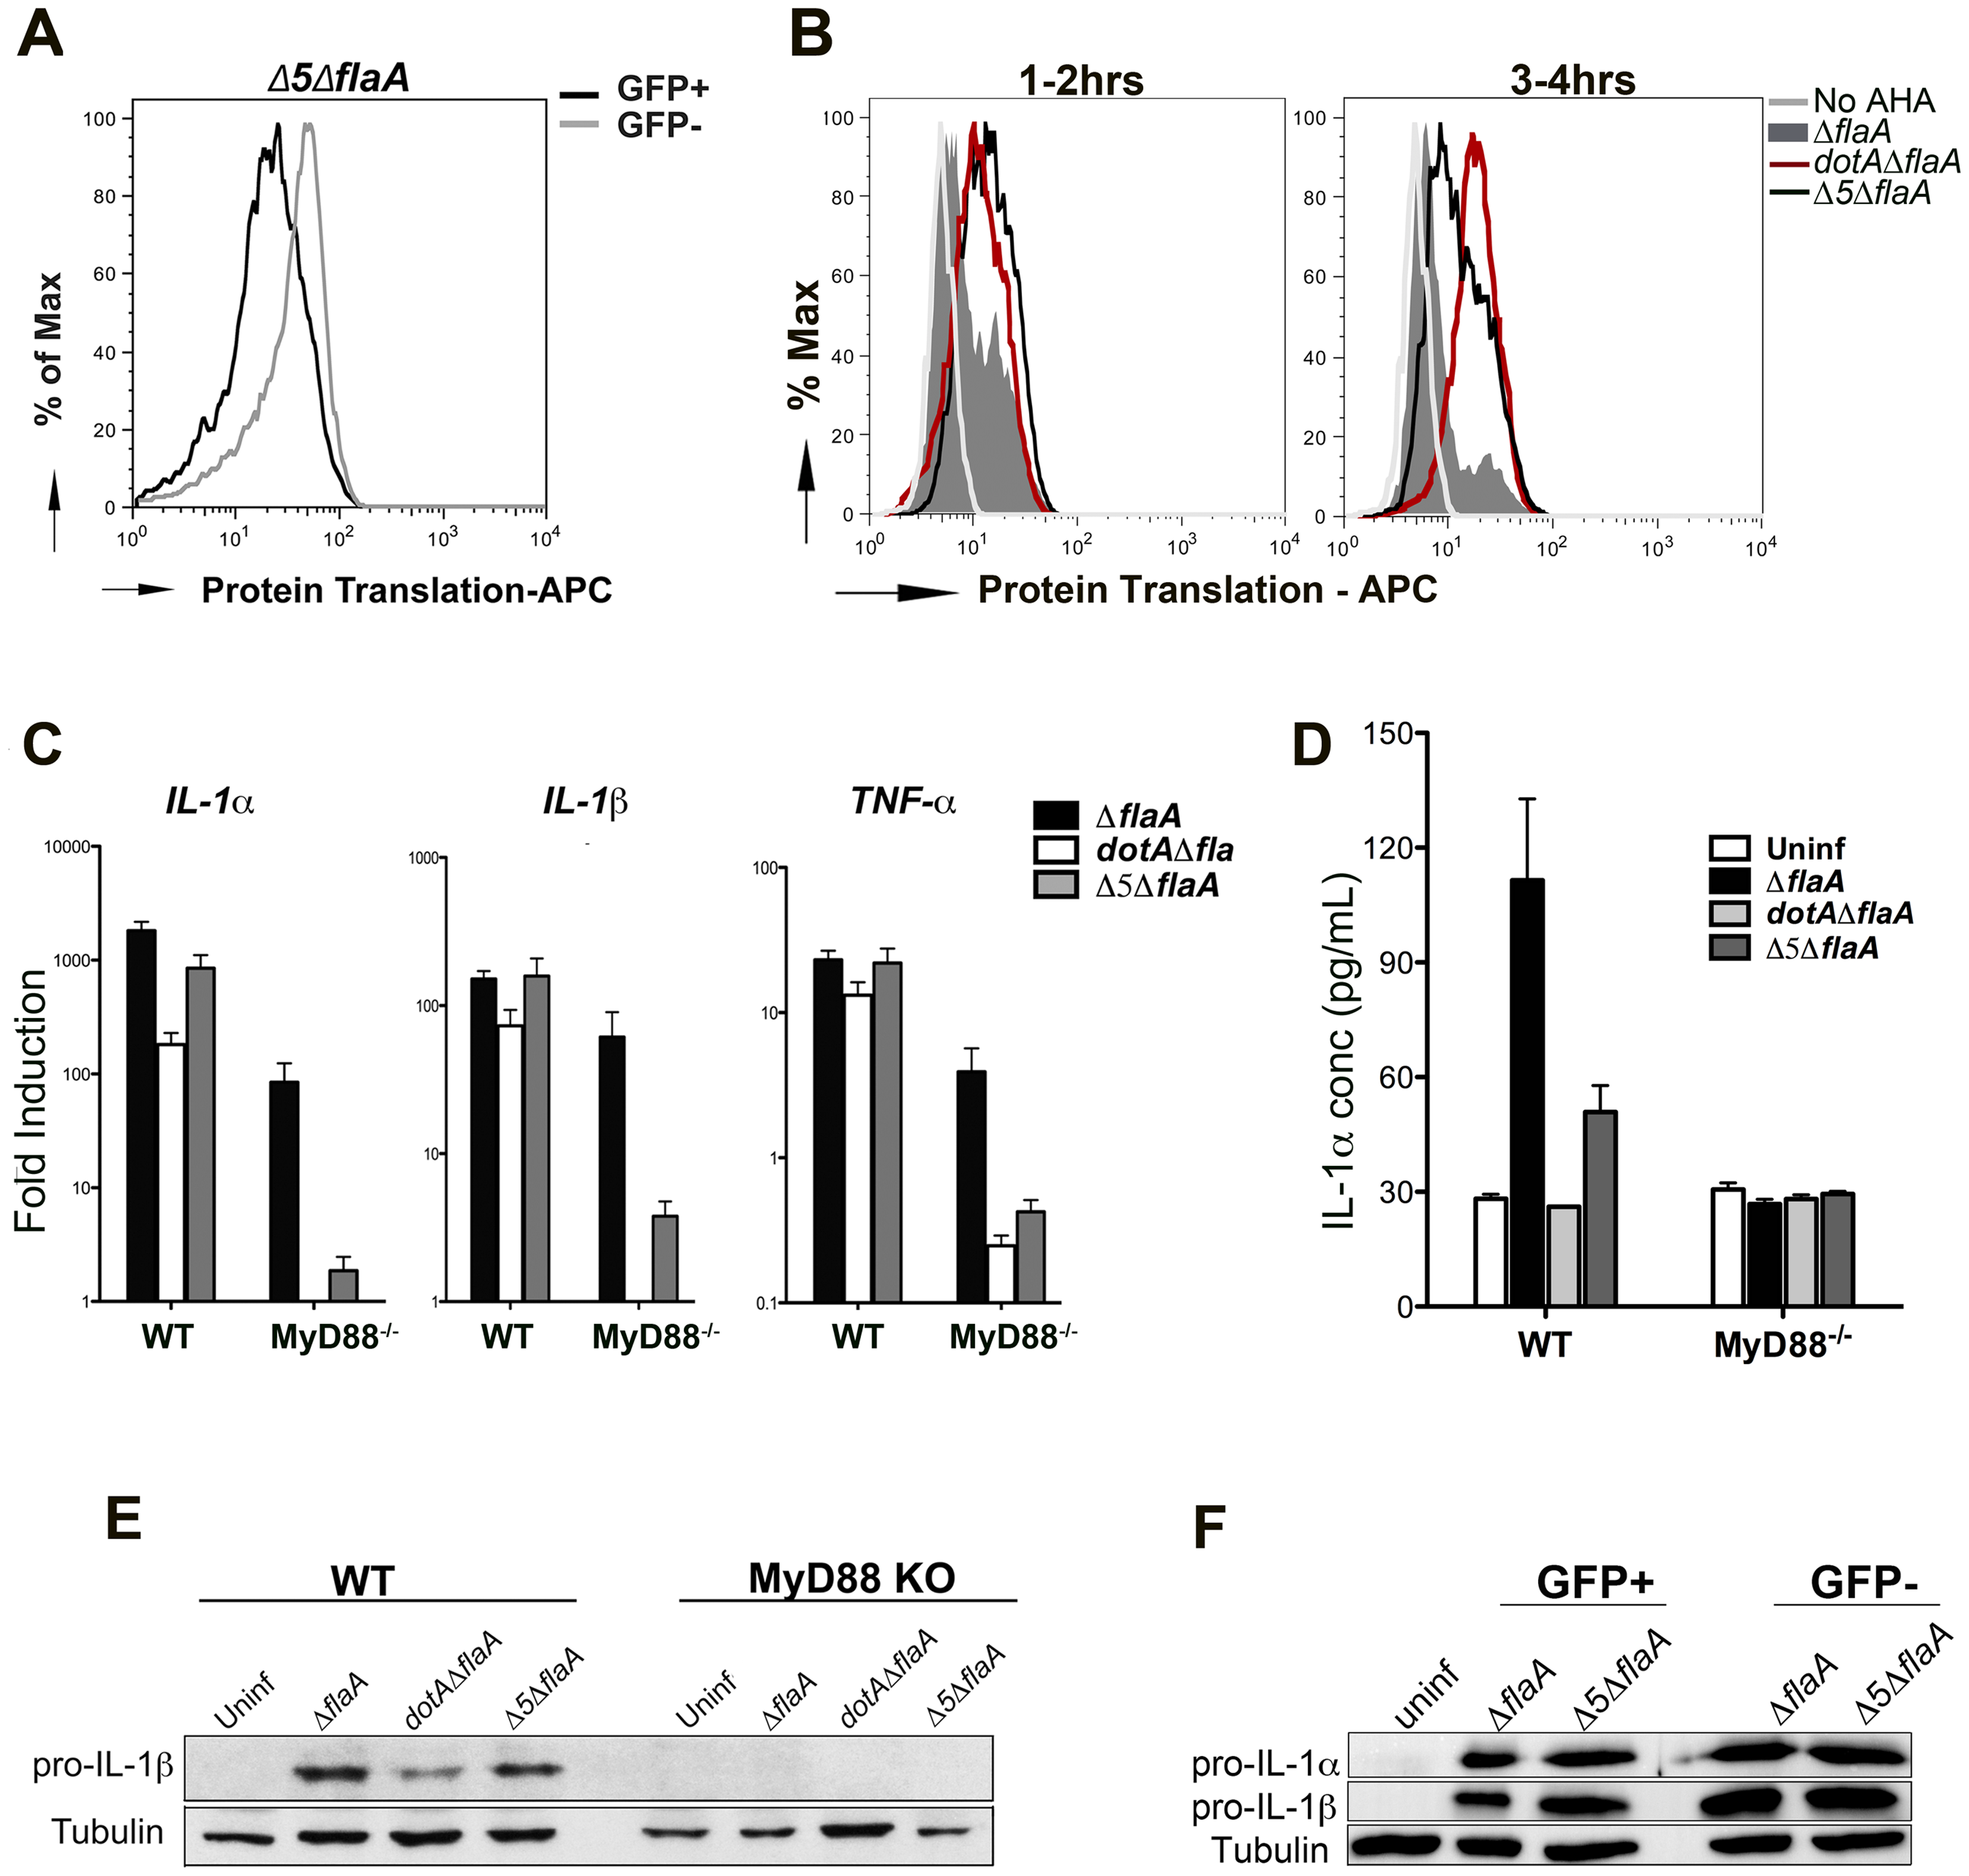 Production of the pro-inflammatory cytokines IL-1α and IL-1β is independent of the five translocated protein synthesis inhibitors